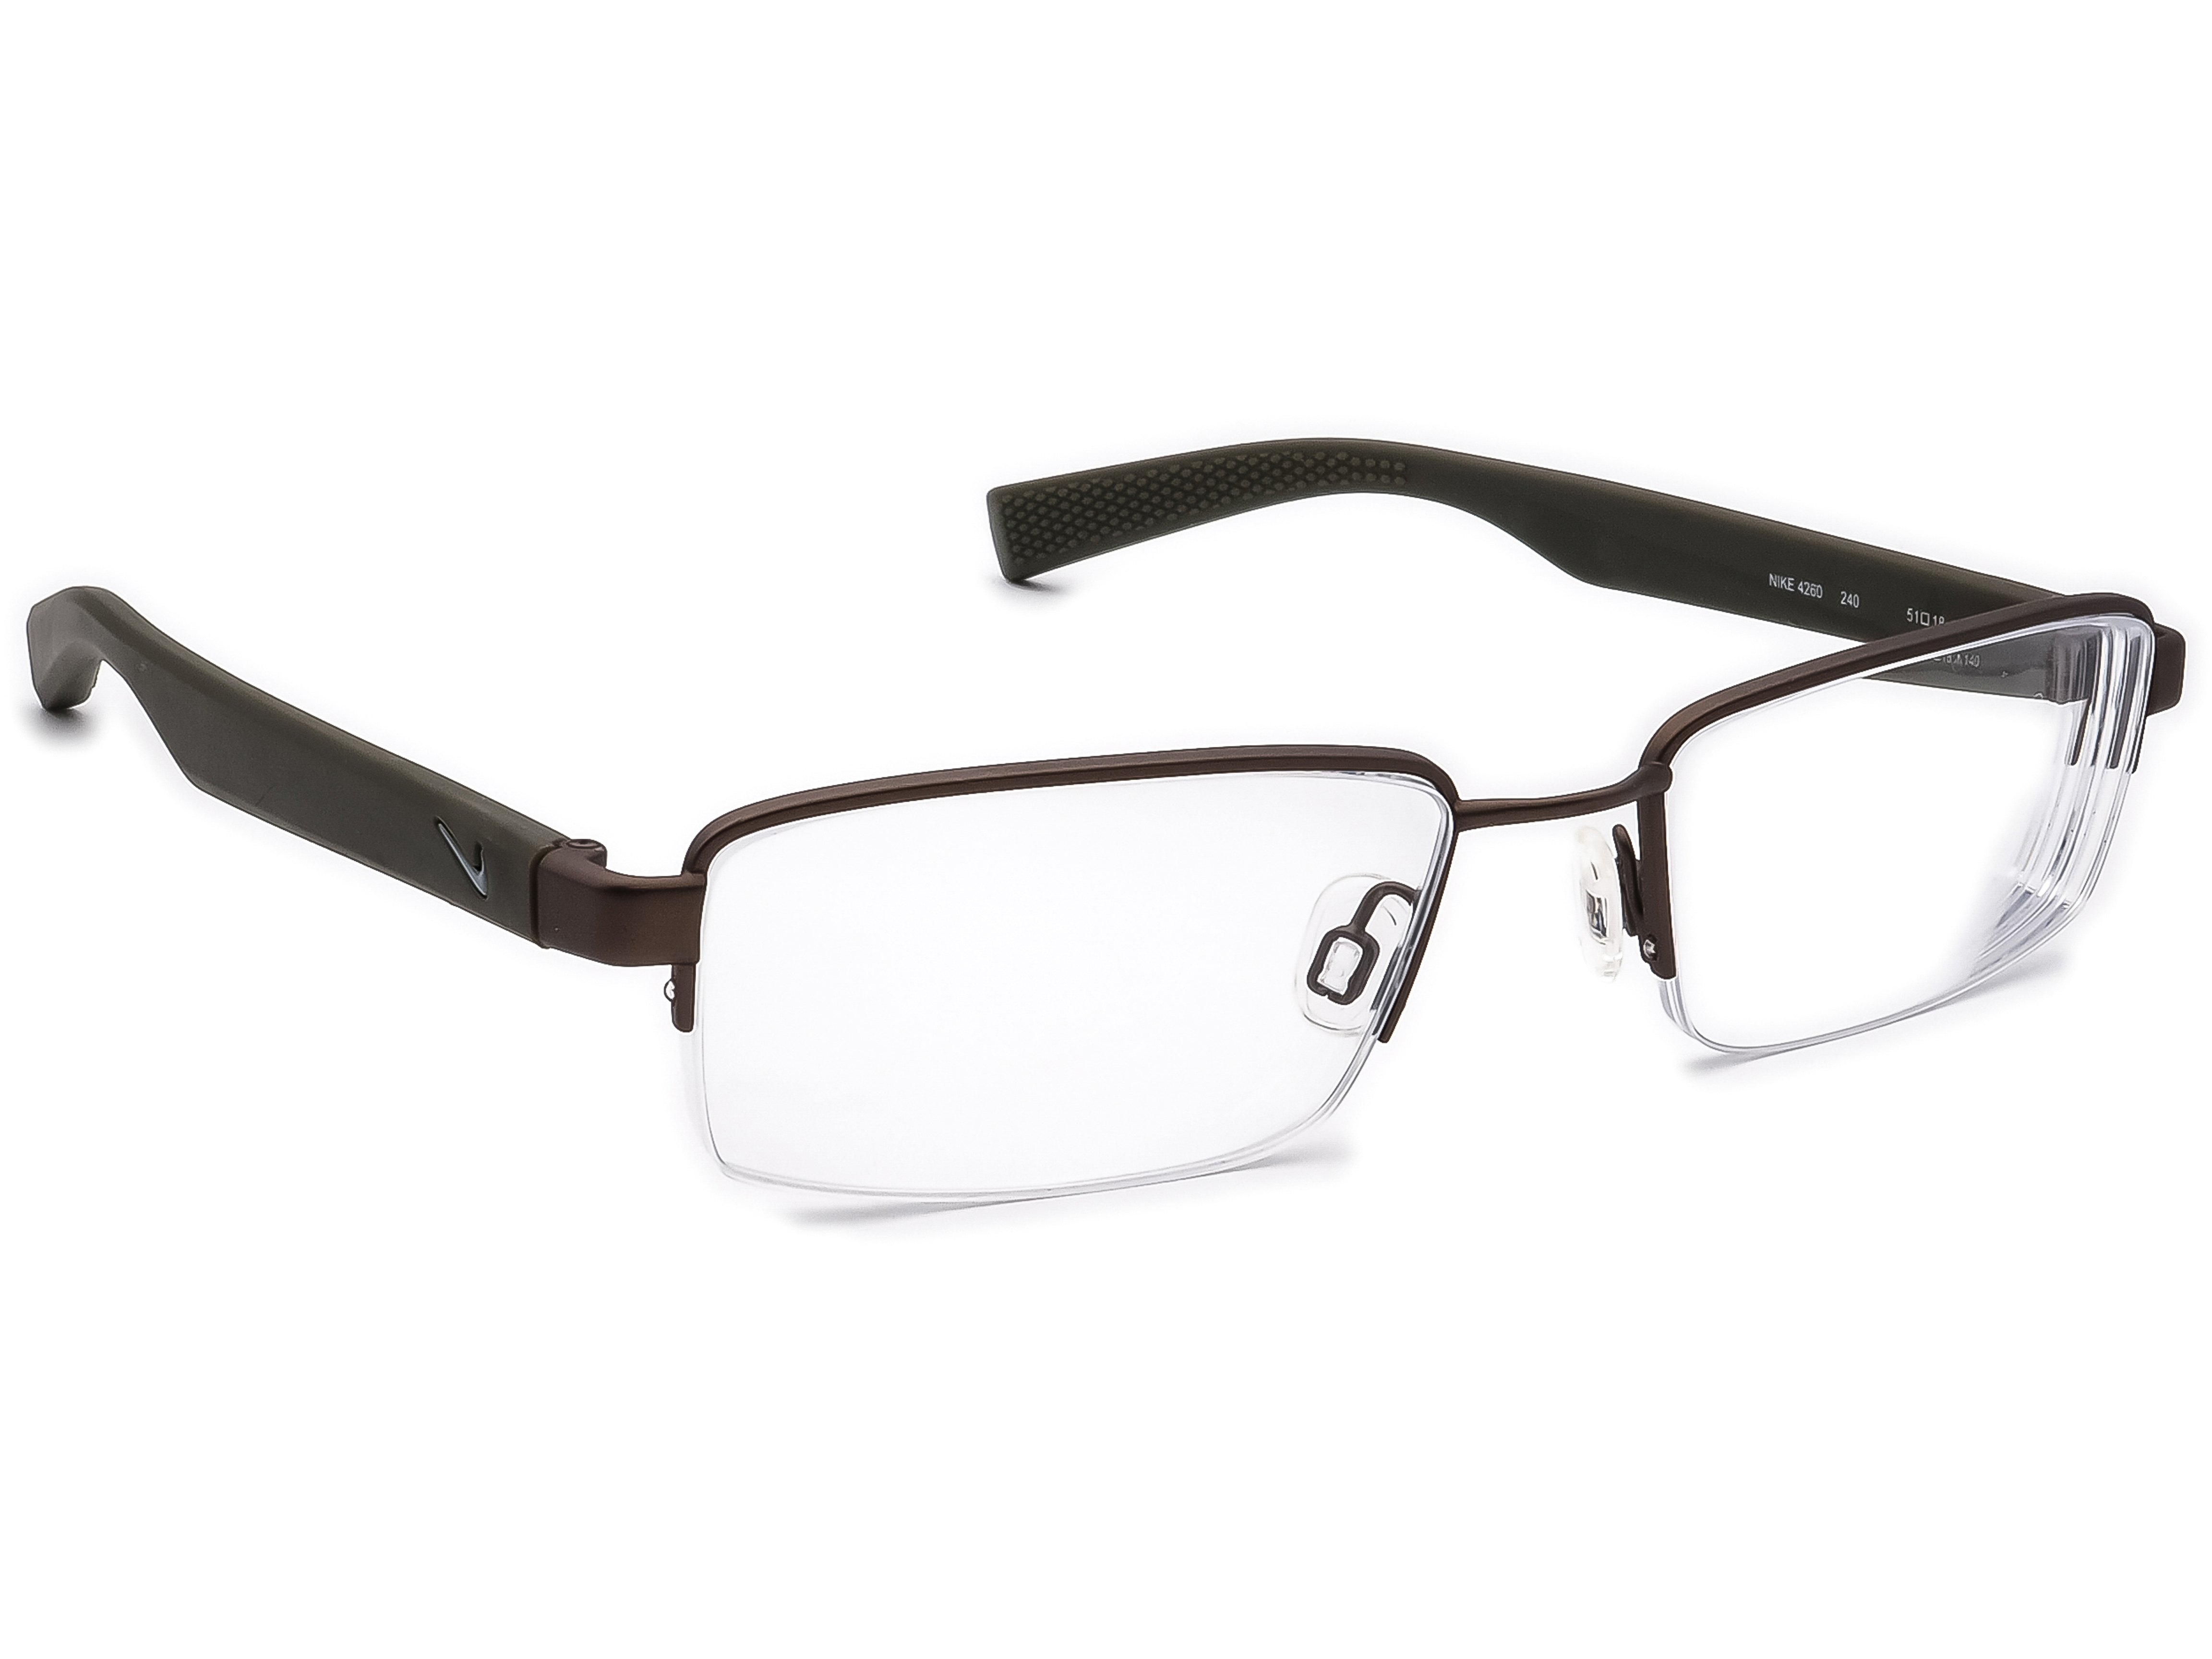 Nike With Flexon 4260 240 Eyeglasses